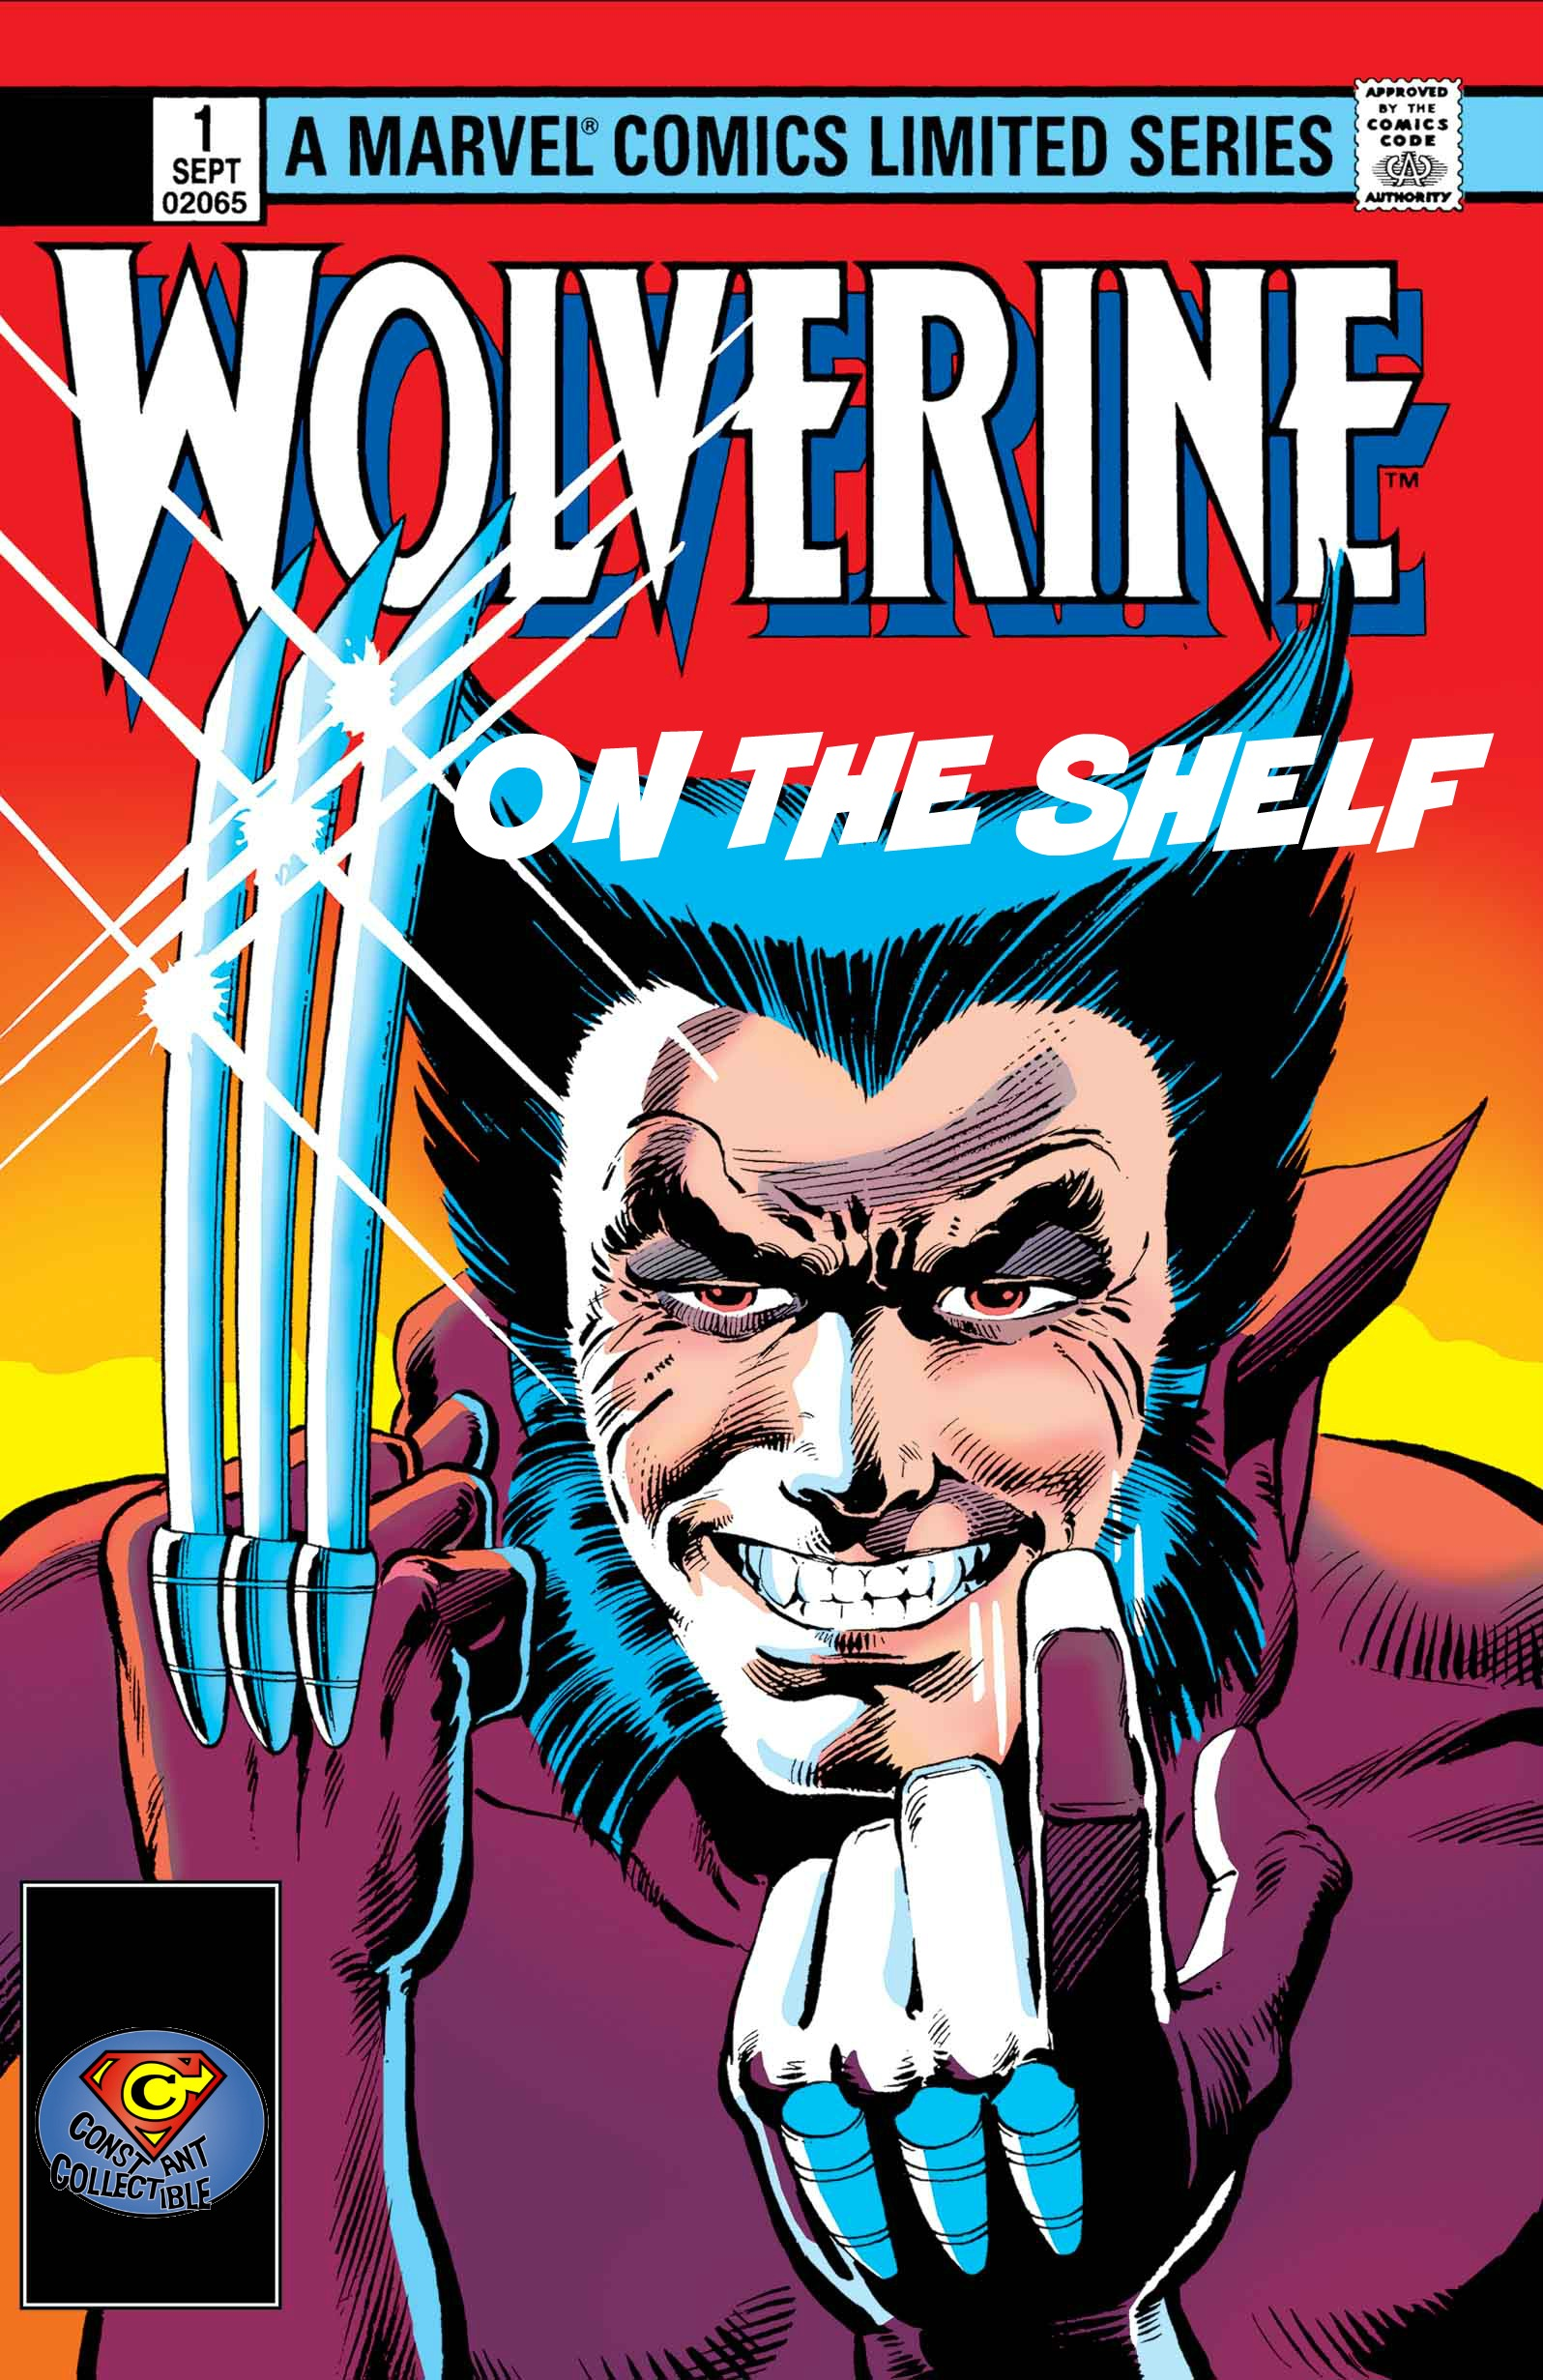 True_Believers_Wolverine OTS.jpg